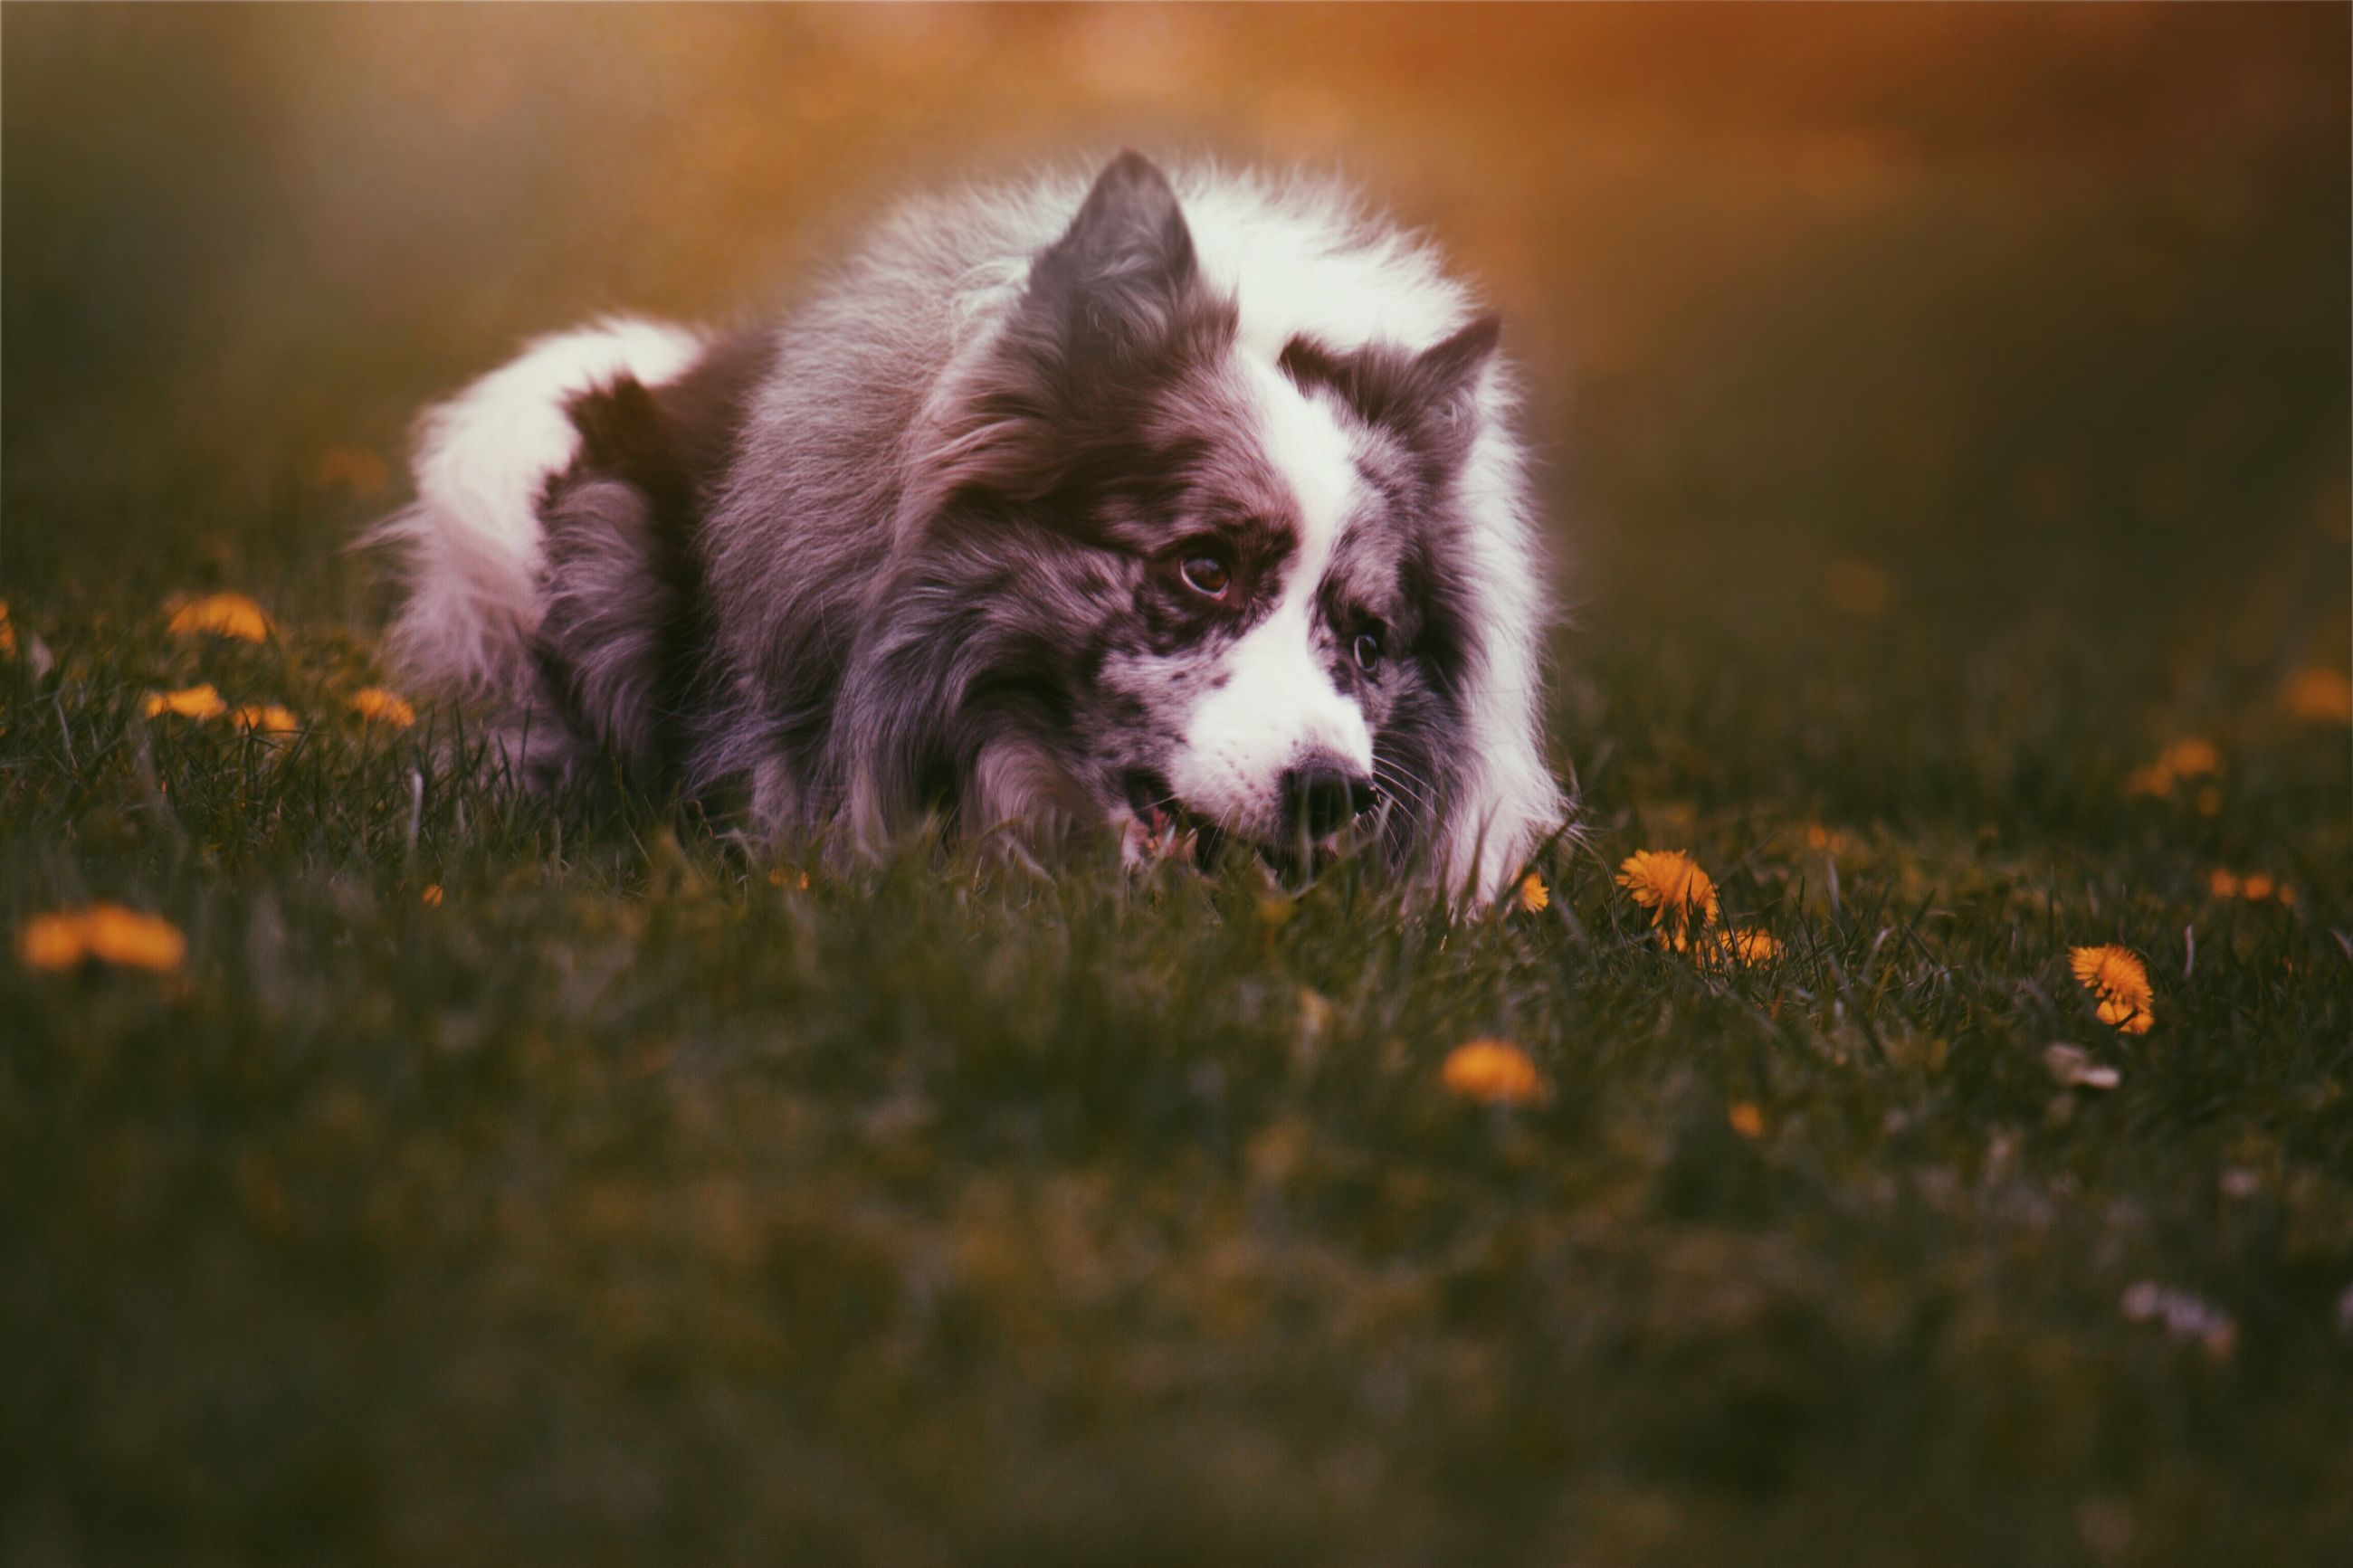 animal themes, one animal, domestic animals, pets, mammal, field, grass, dog, selective focus, grassy, focus on foreground, nature, close-up, no people, outdoors, day, growth, plant, relaxation, young animal